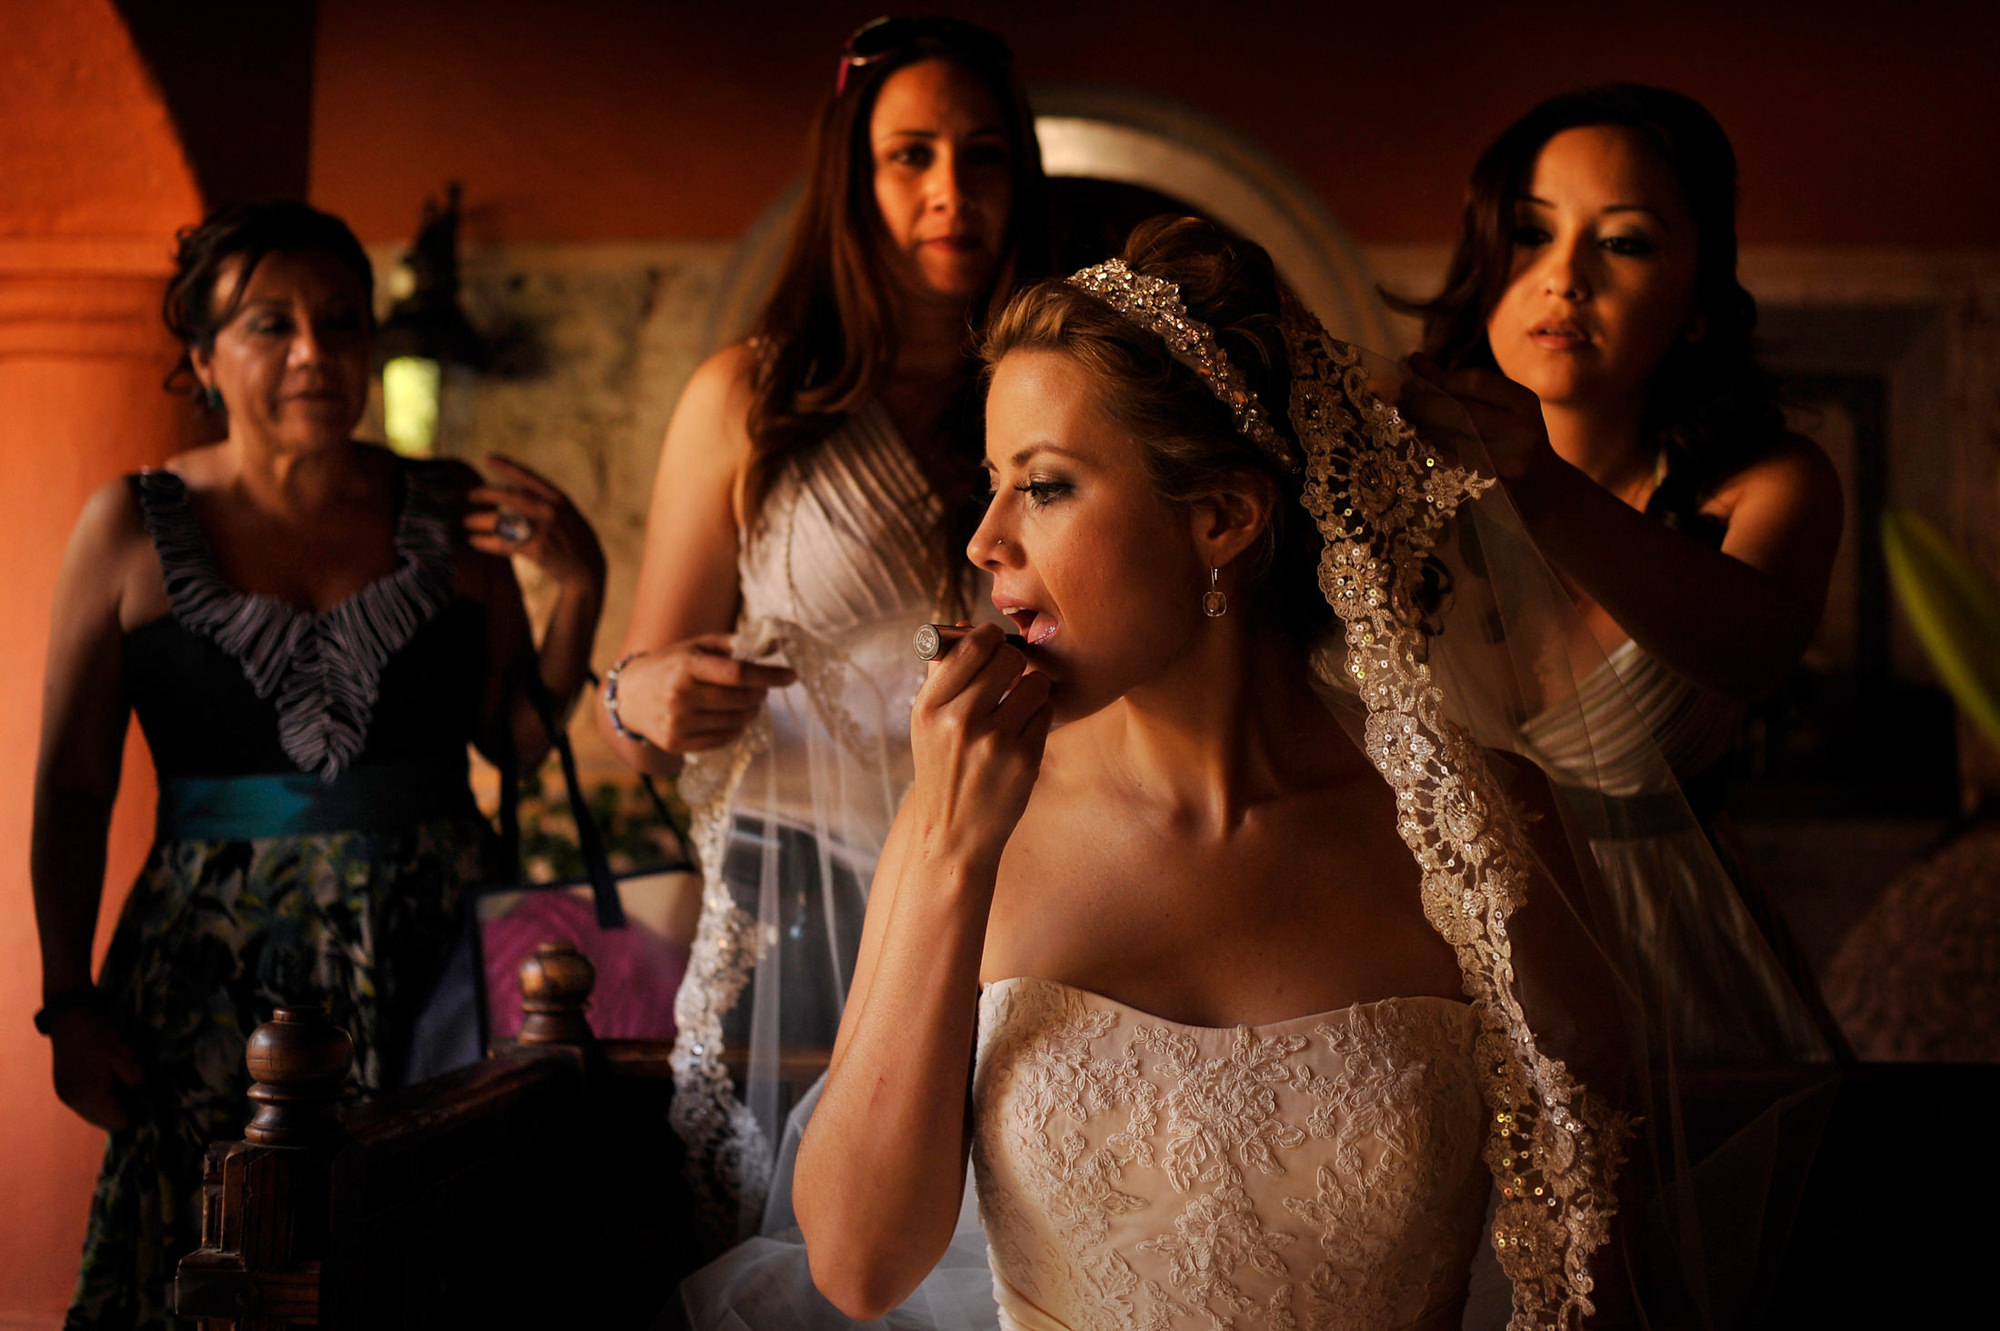 Bride puts on her lipstick while bridesmaid adjust veil - Daniel Aguilar Photographer